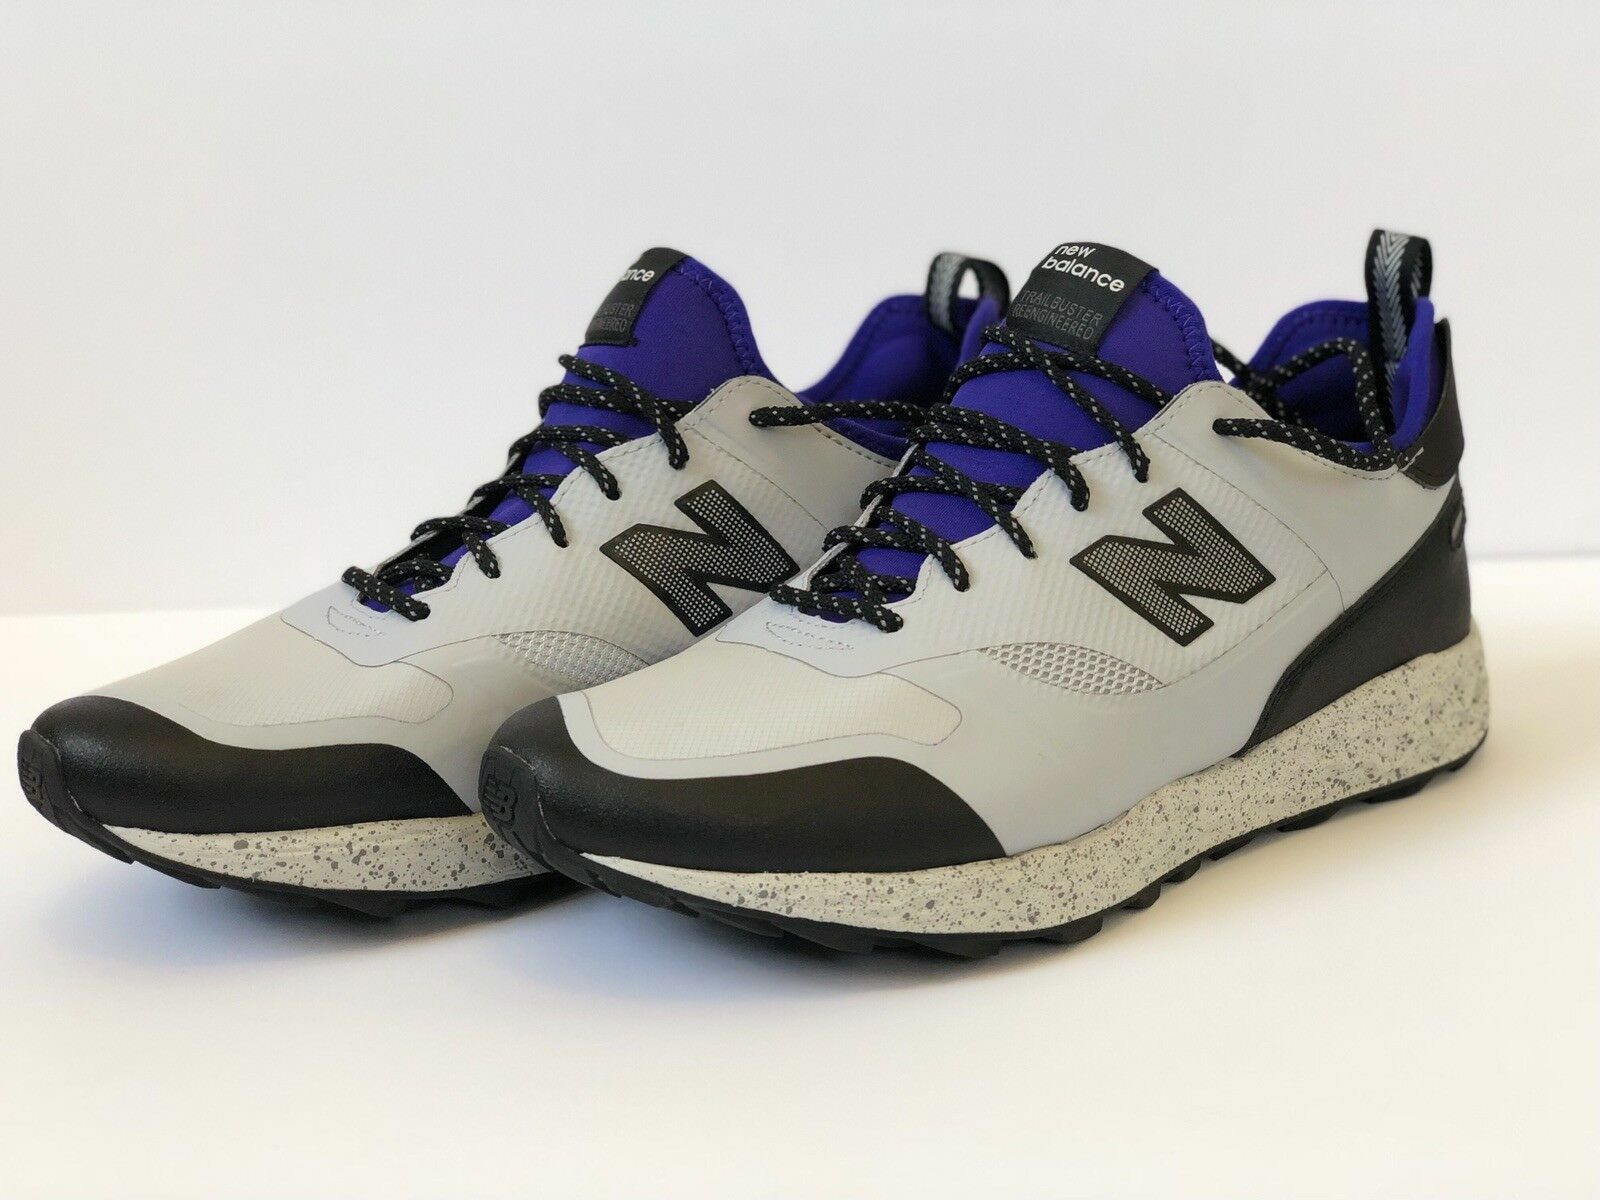 Mens New Balance Uomo Fresh Foam Foam Foam Trailbuster MFLTBGP light grigio  viola Dimensione 10.5 fa860c